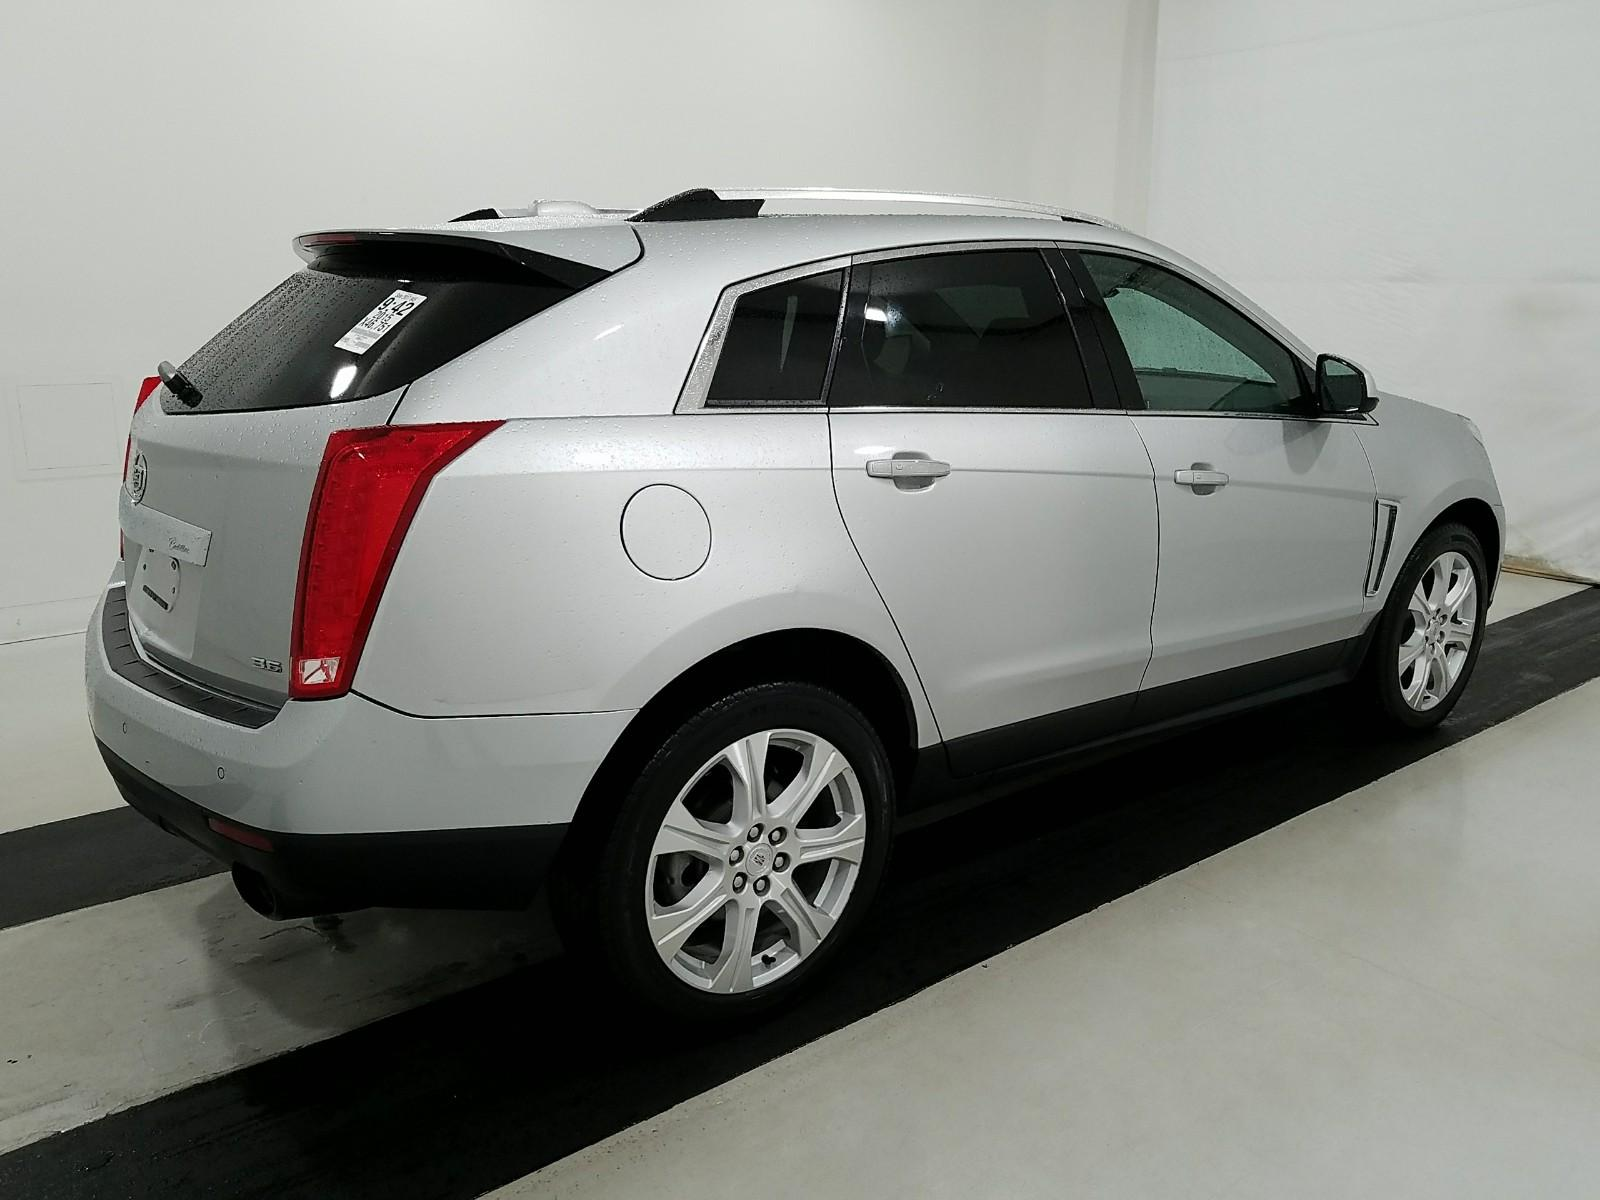 cadillac srx bc vehicles for vancouver vehicle in sale used vehiclesearchresults photo